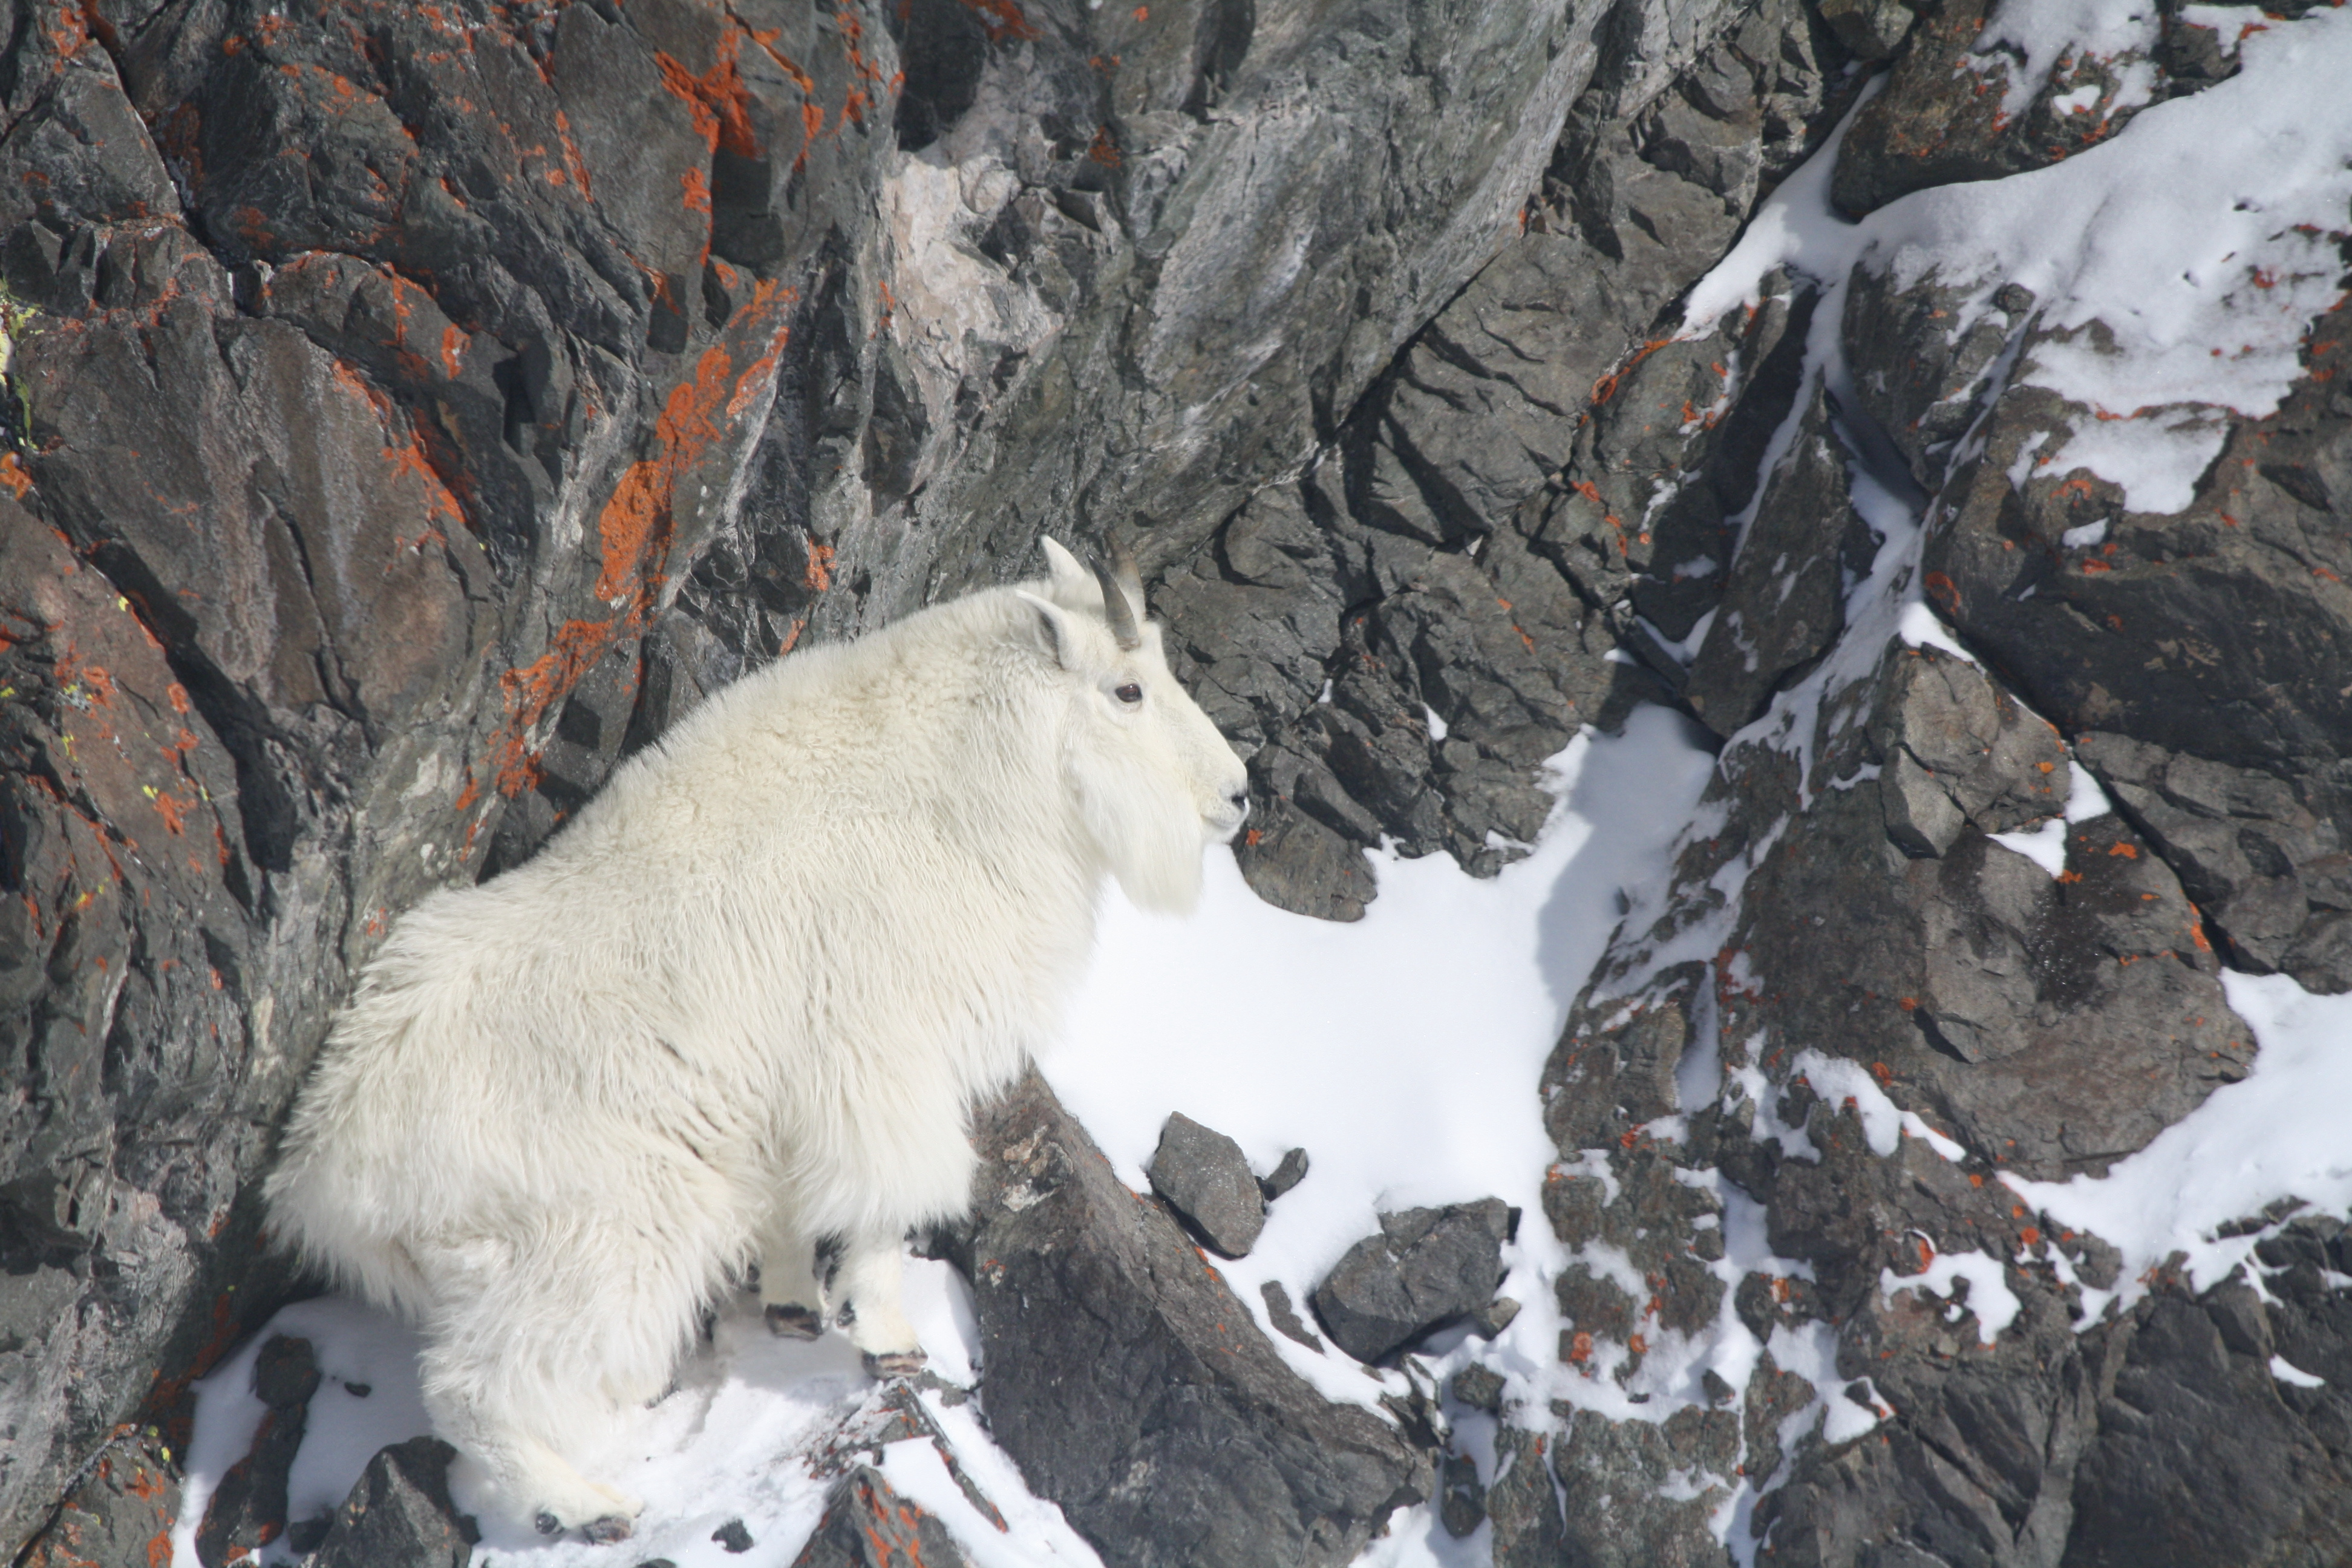 mountain goat in boulders covered in snow February 2012